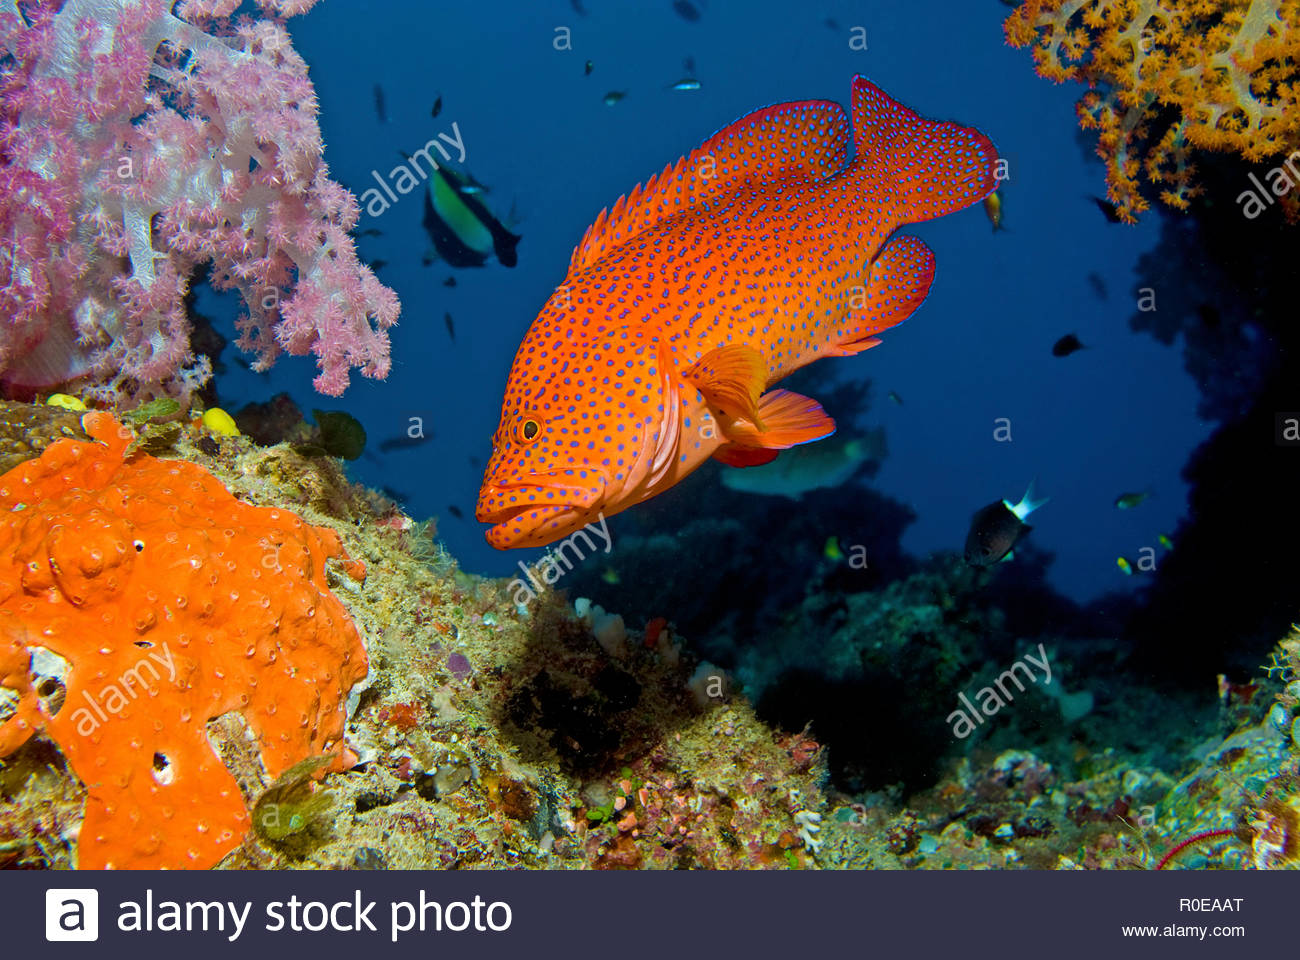 Coral Grouper or Coral Trout (Cephalopholis miniata) at a coral reef, Fidji islands - Stock Image